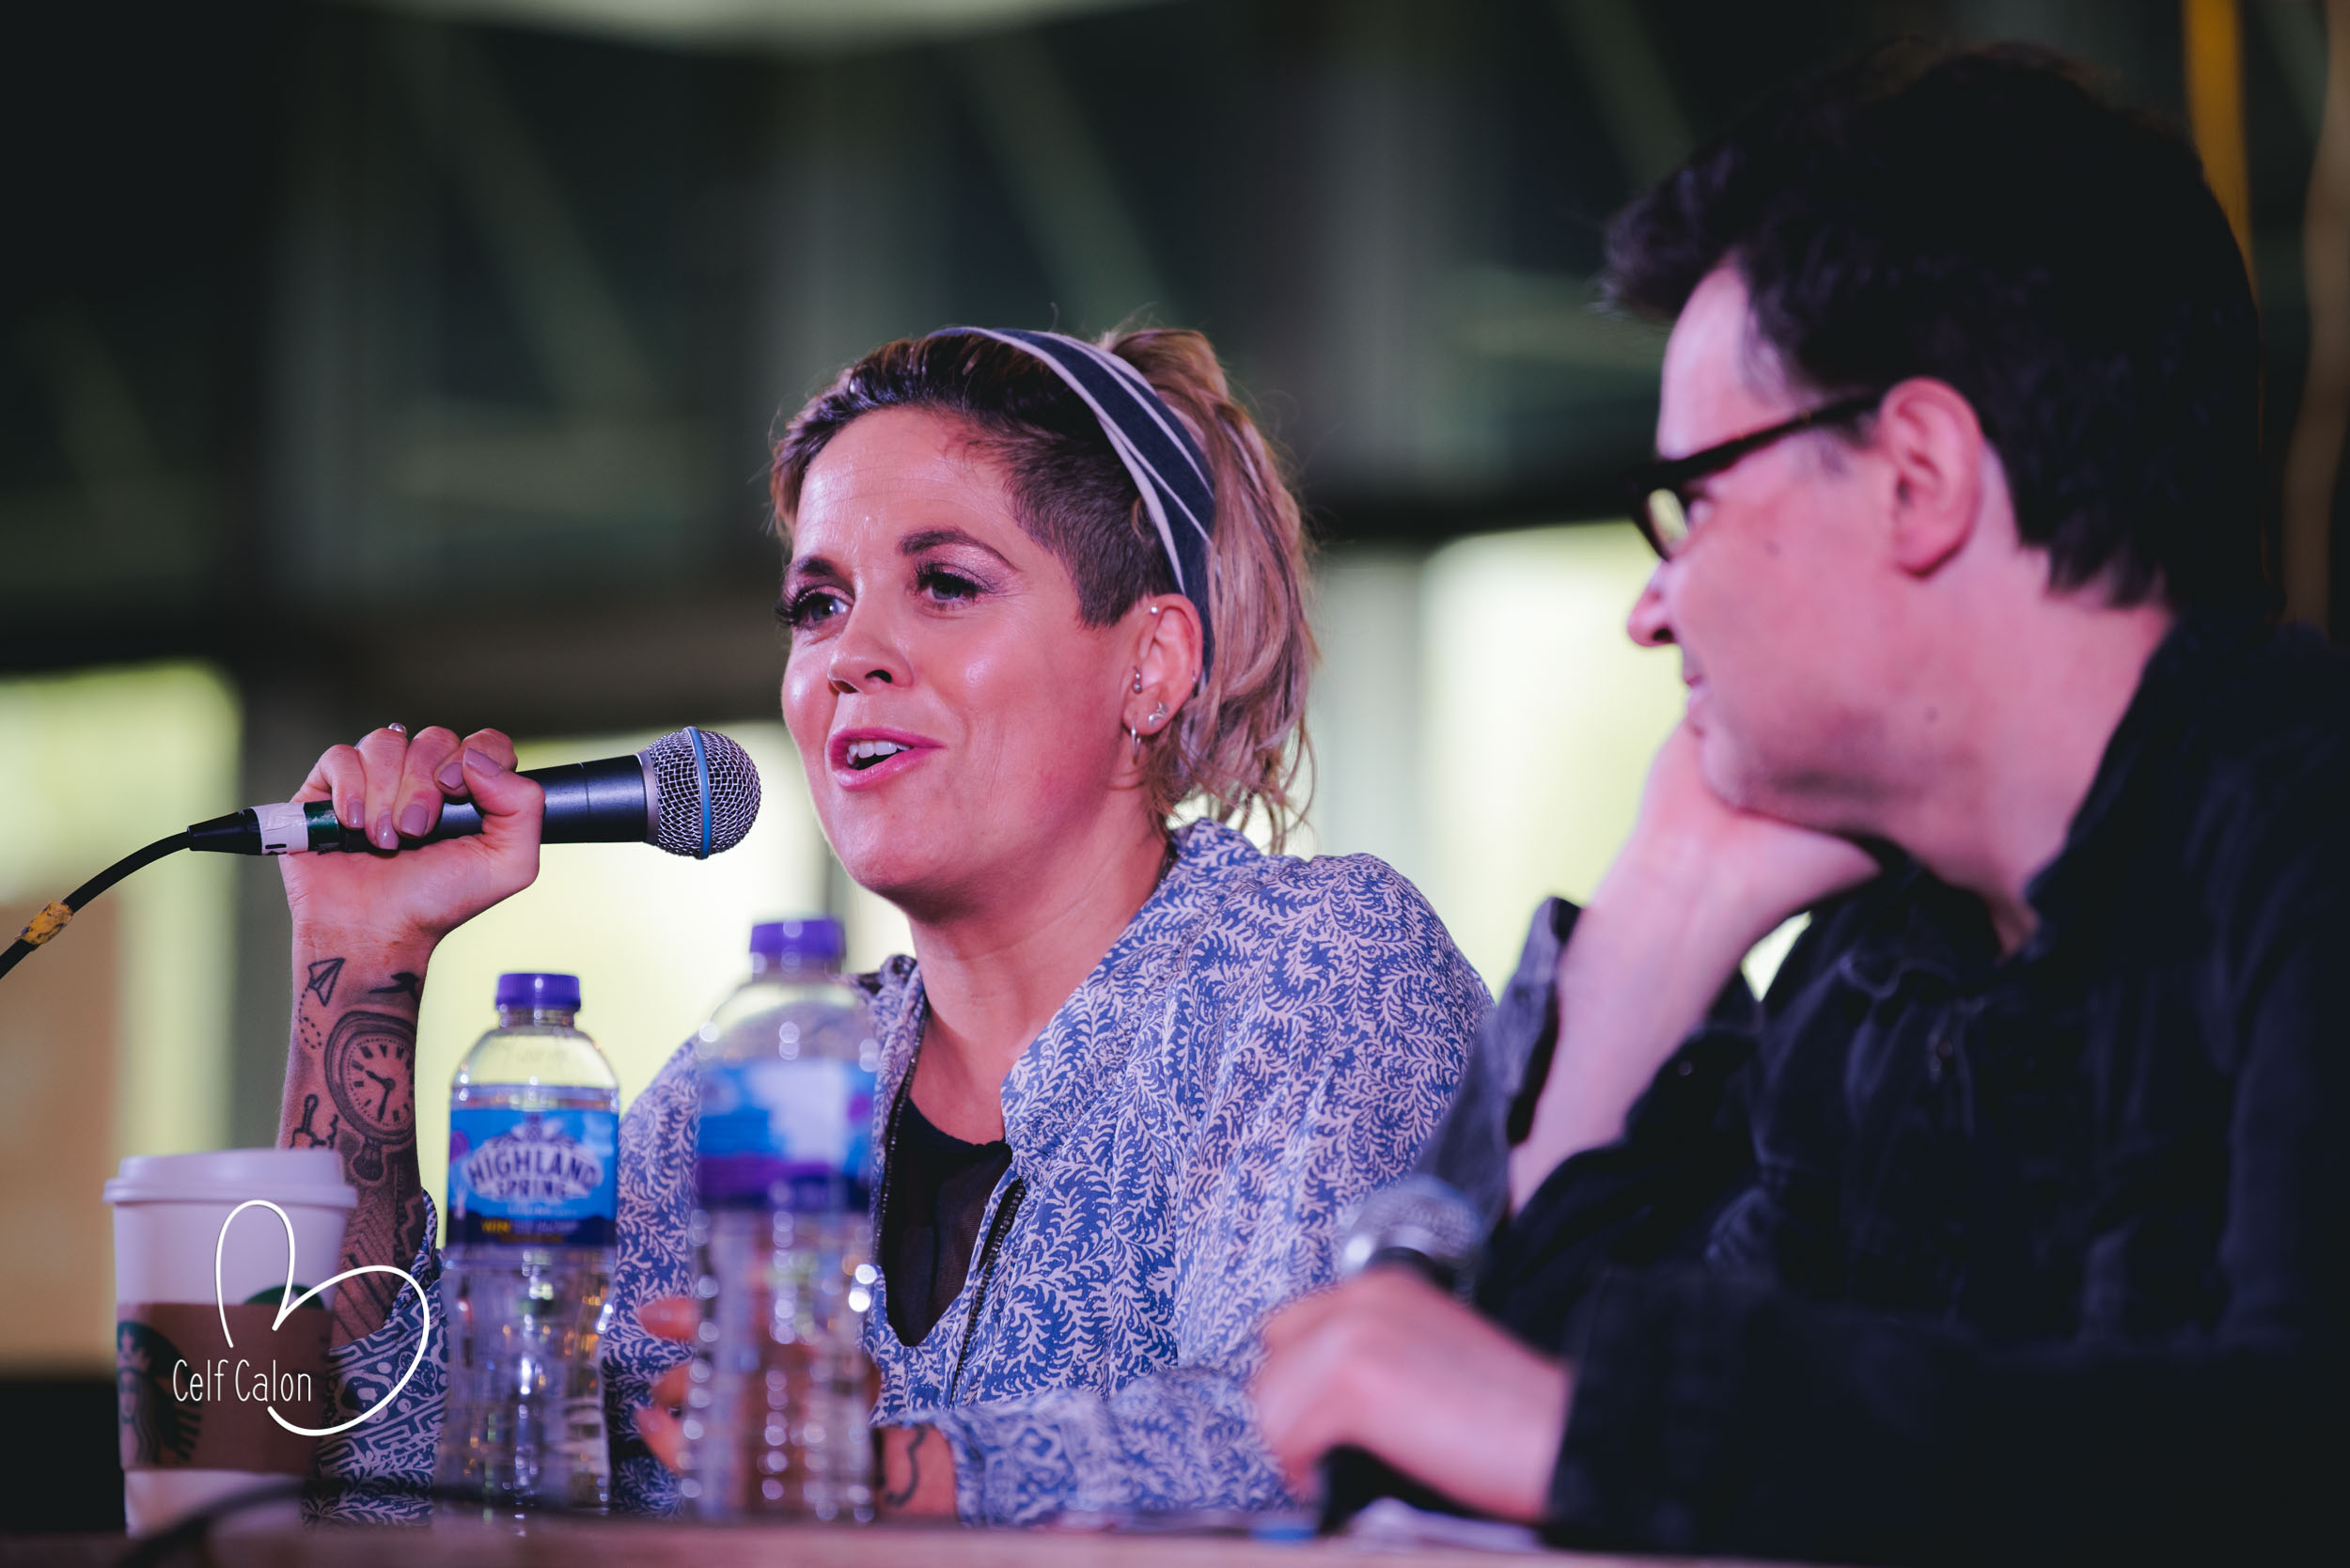 25_05_2018_Q&Q Amy Wadge_006.jpg